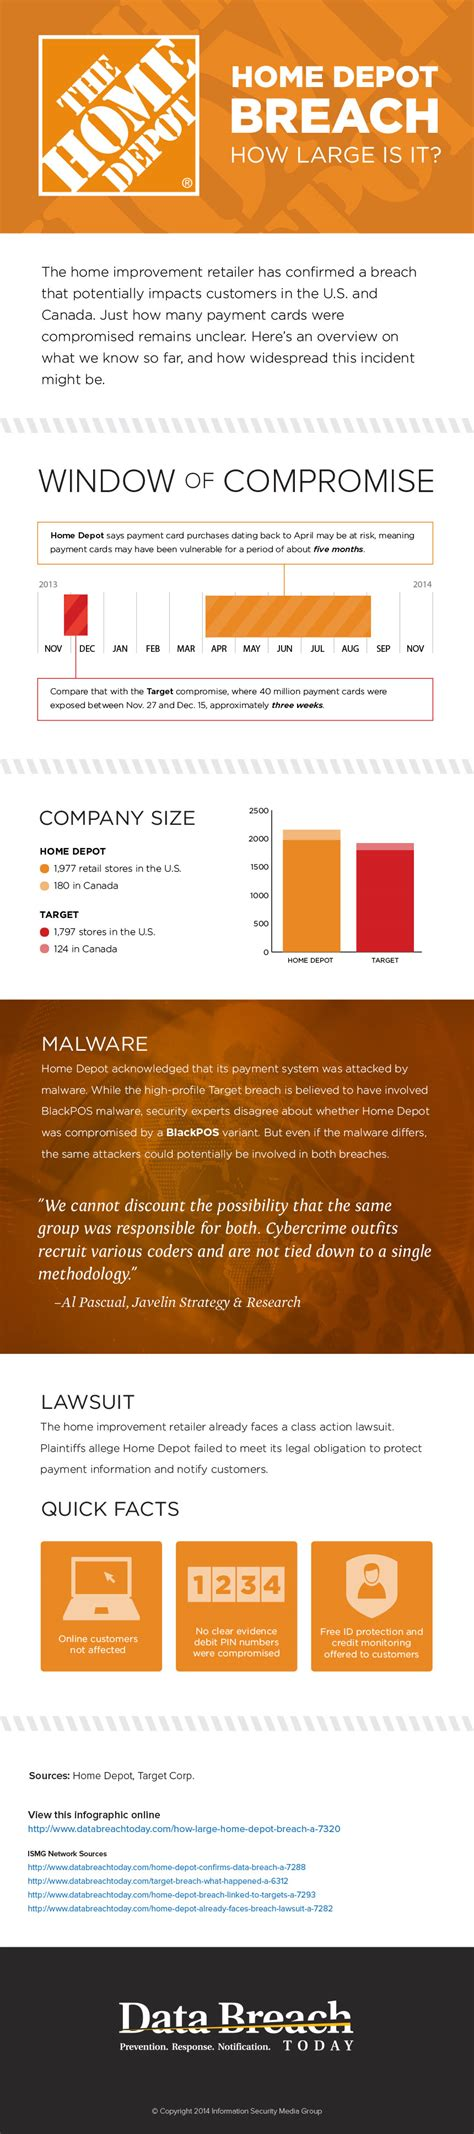 how large is home depot breach bankinfosecurity